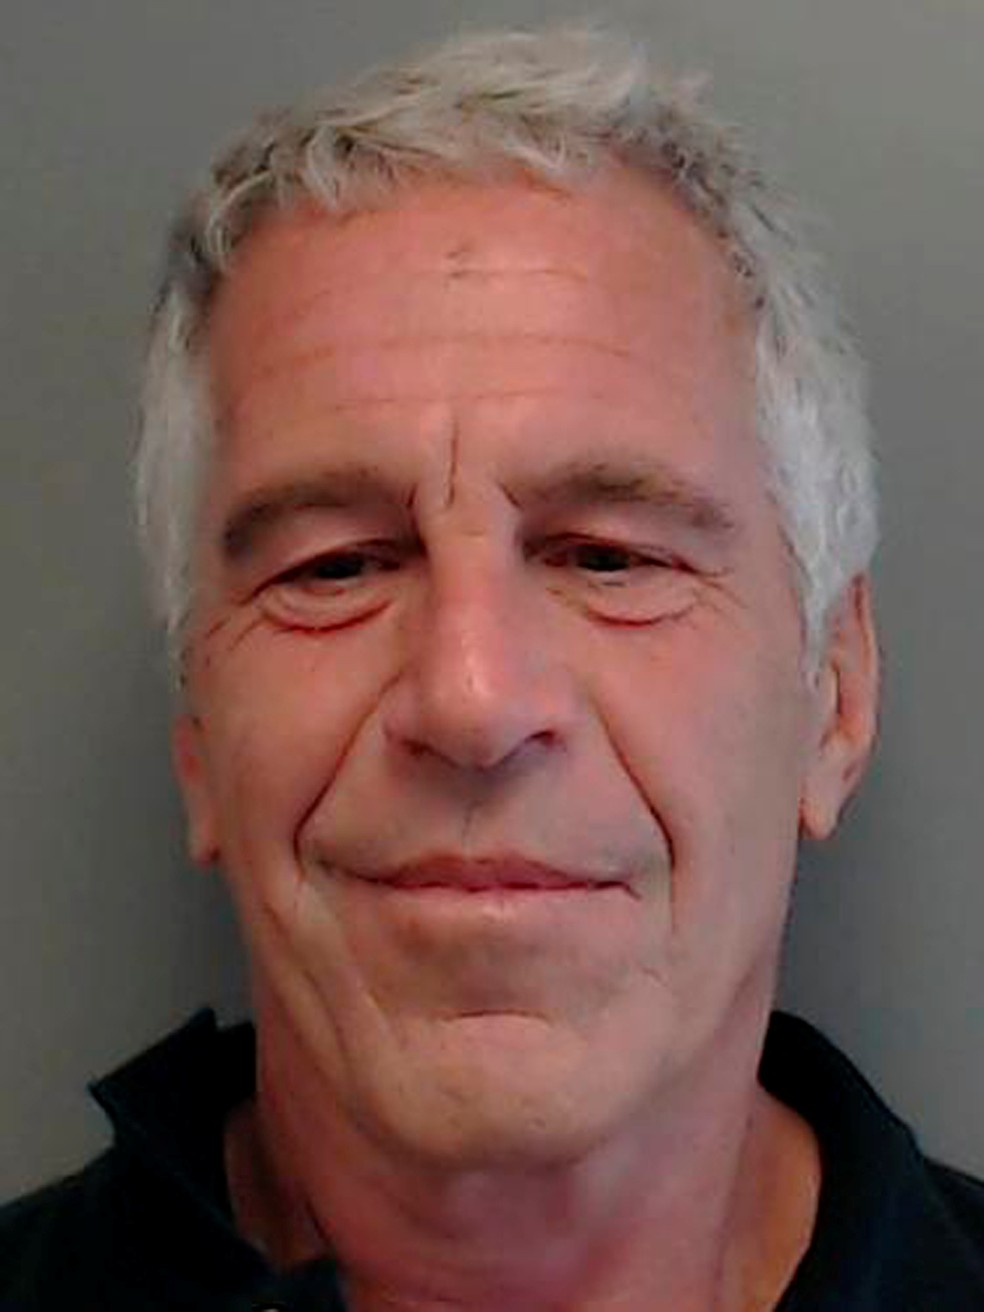 Jeffrey Epstein, de 66 anos, foi preso no sábado (6). — Foto: Florida Department of Law Enforcement/Handout via Reuters